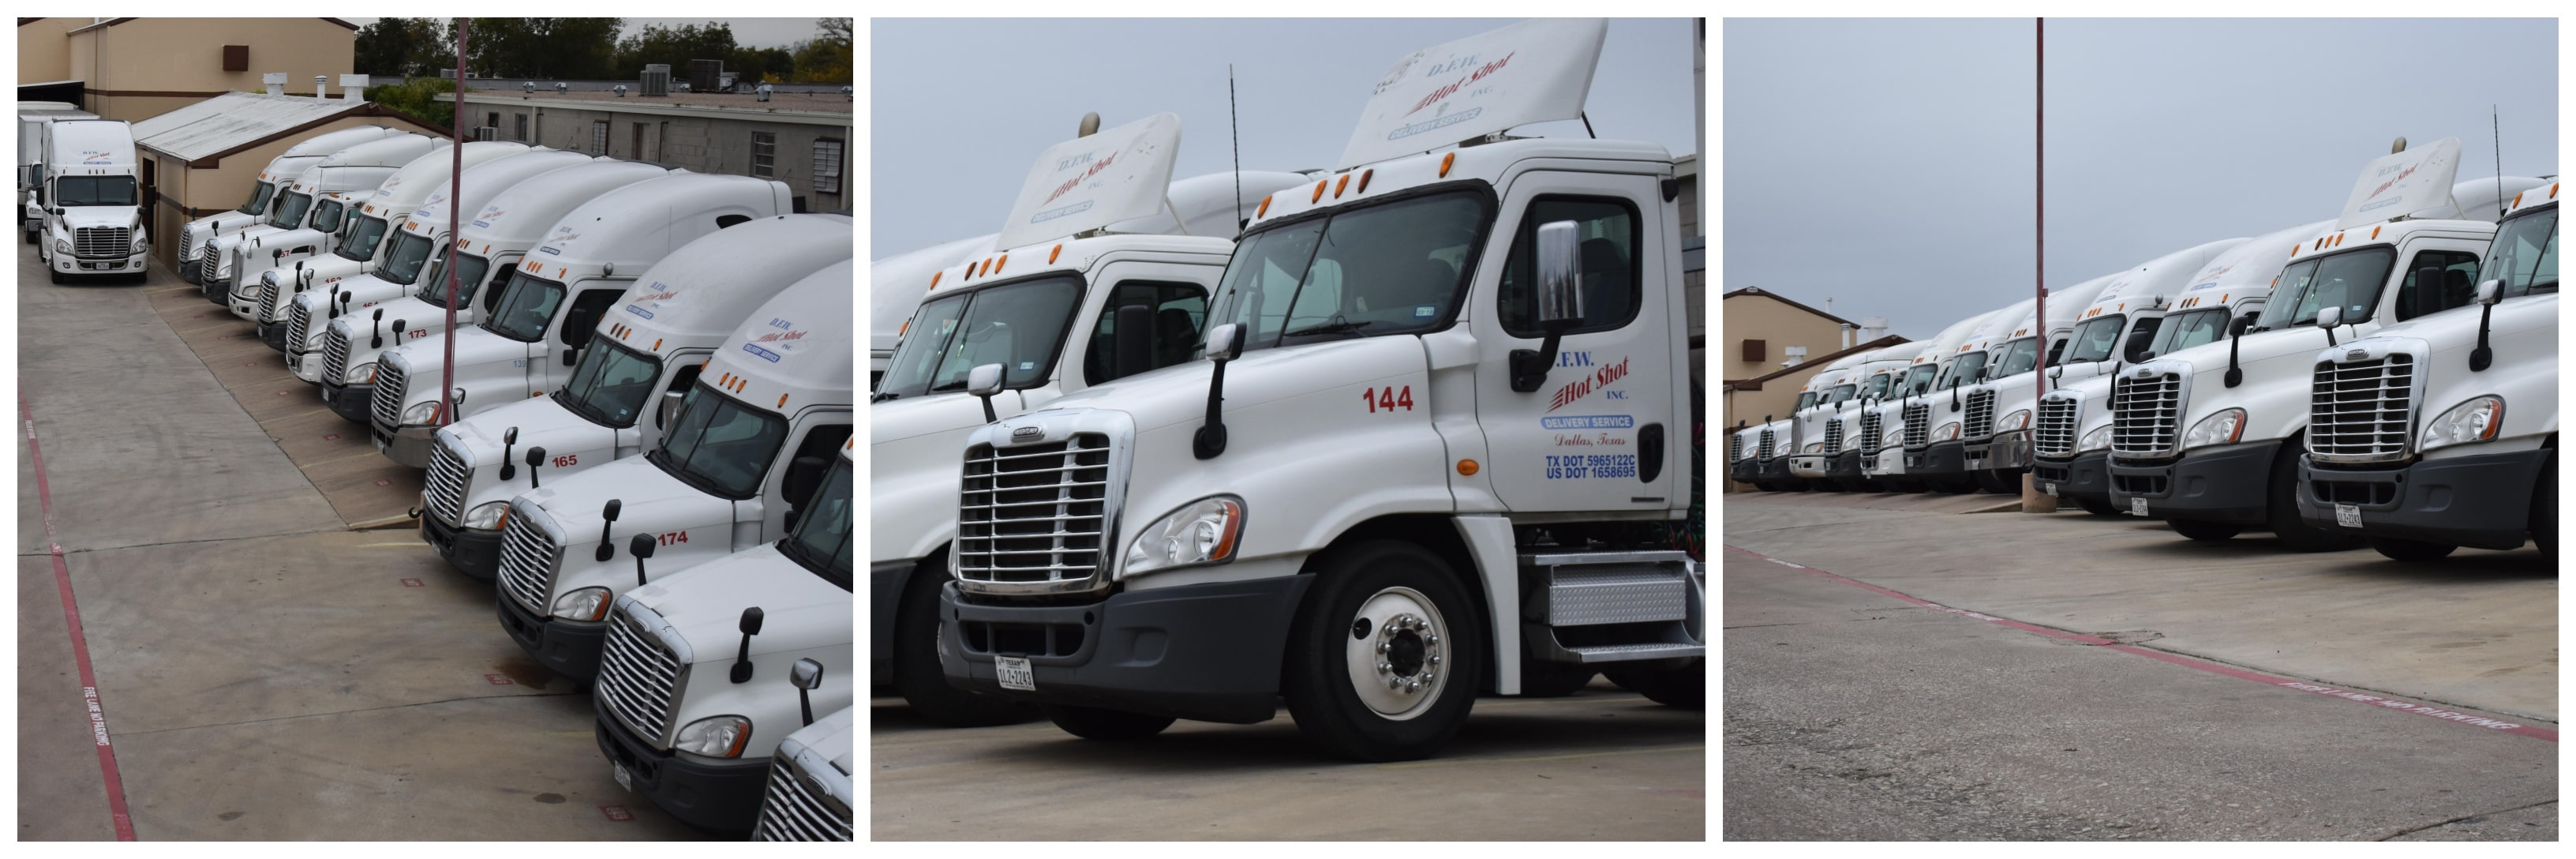 DFW Hot Shot Inc  – Local LTL and Truckload Services for the